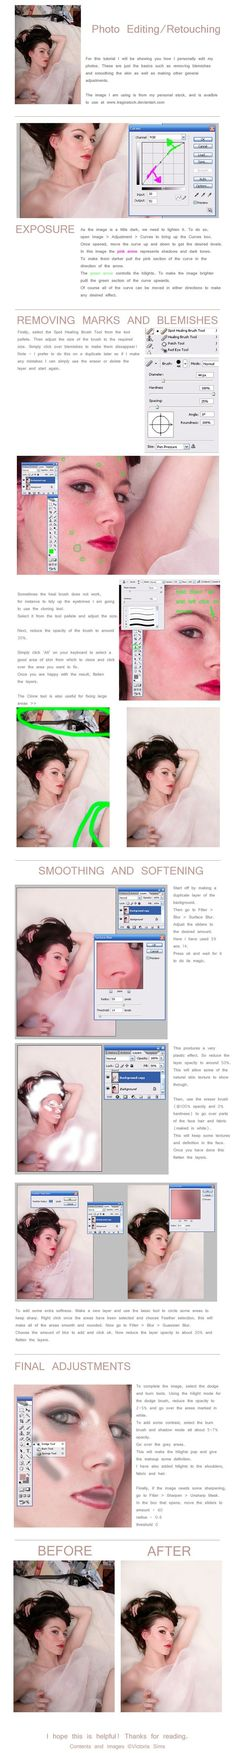 Just a basic editing tutorial using adobe Photoshop. I've had a few people ask me about doing one of this. It's taken absolutely aaaaaaages so I really hope it helps someone. The image is...